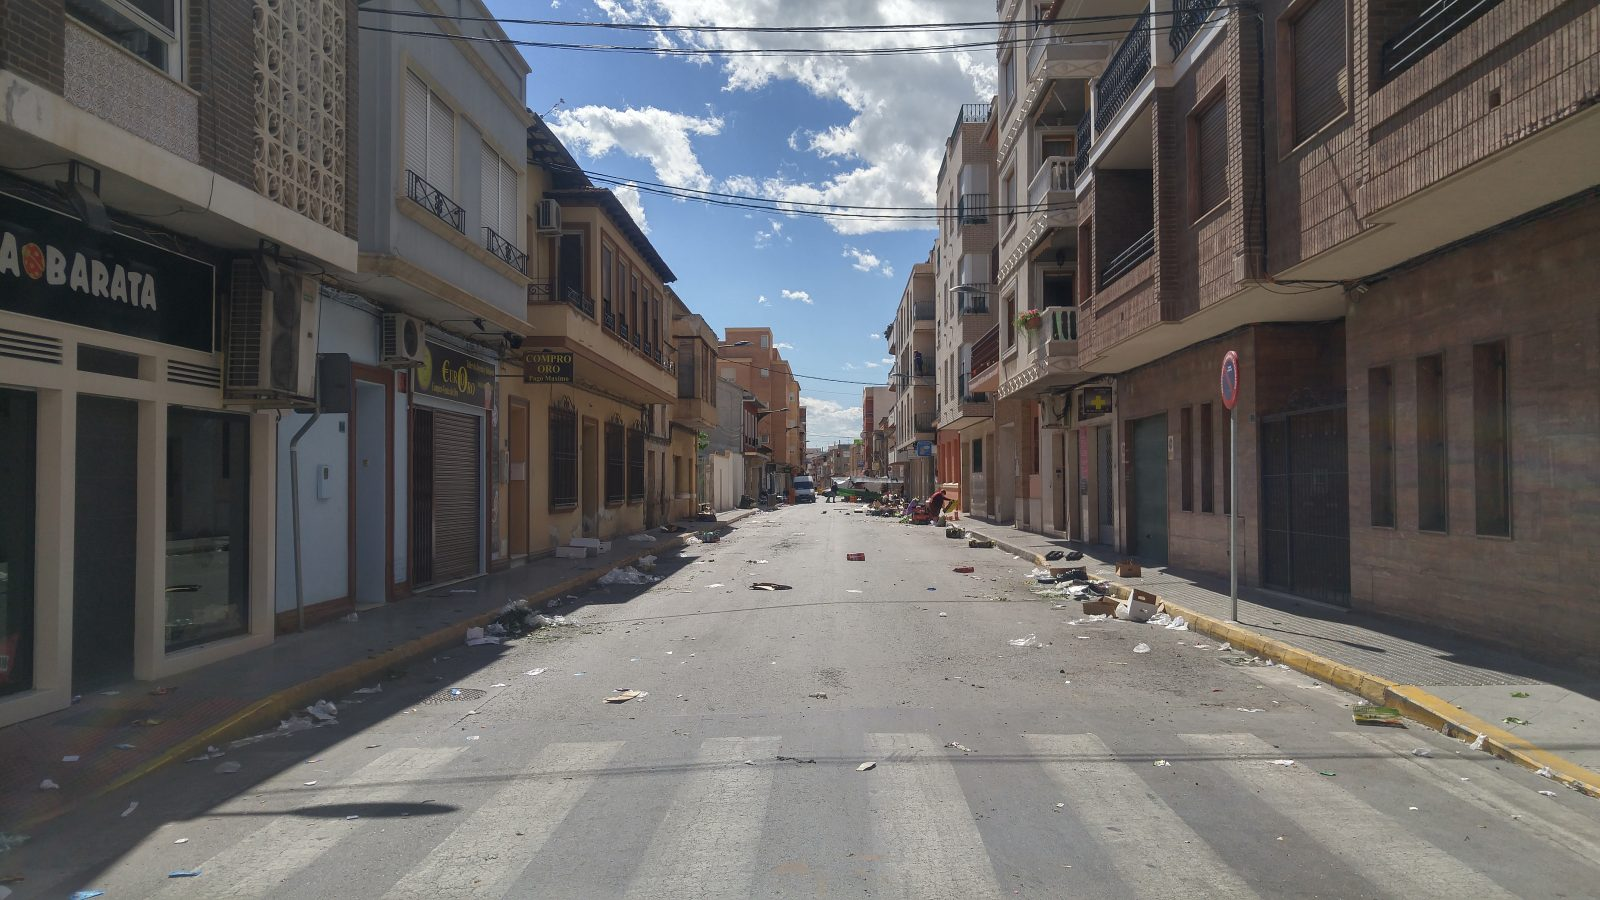 Street in Almoradi, Spain after the Market Day